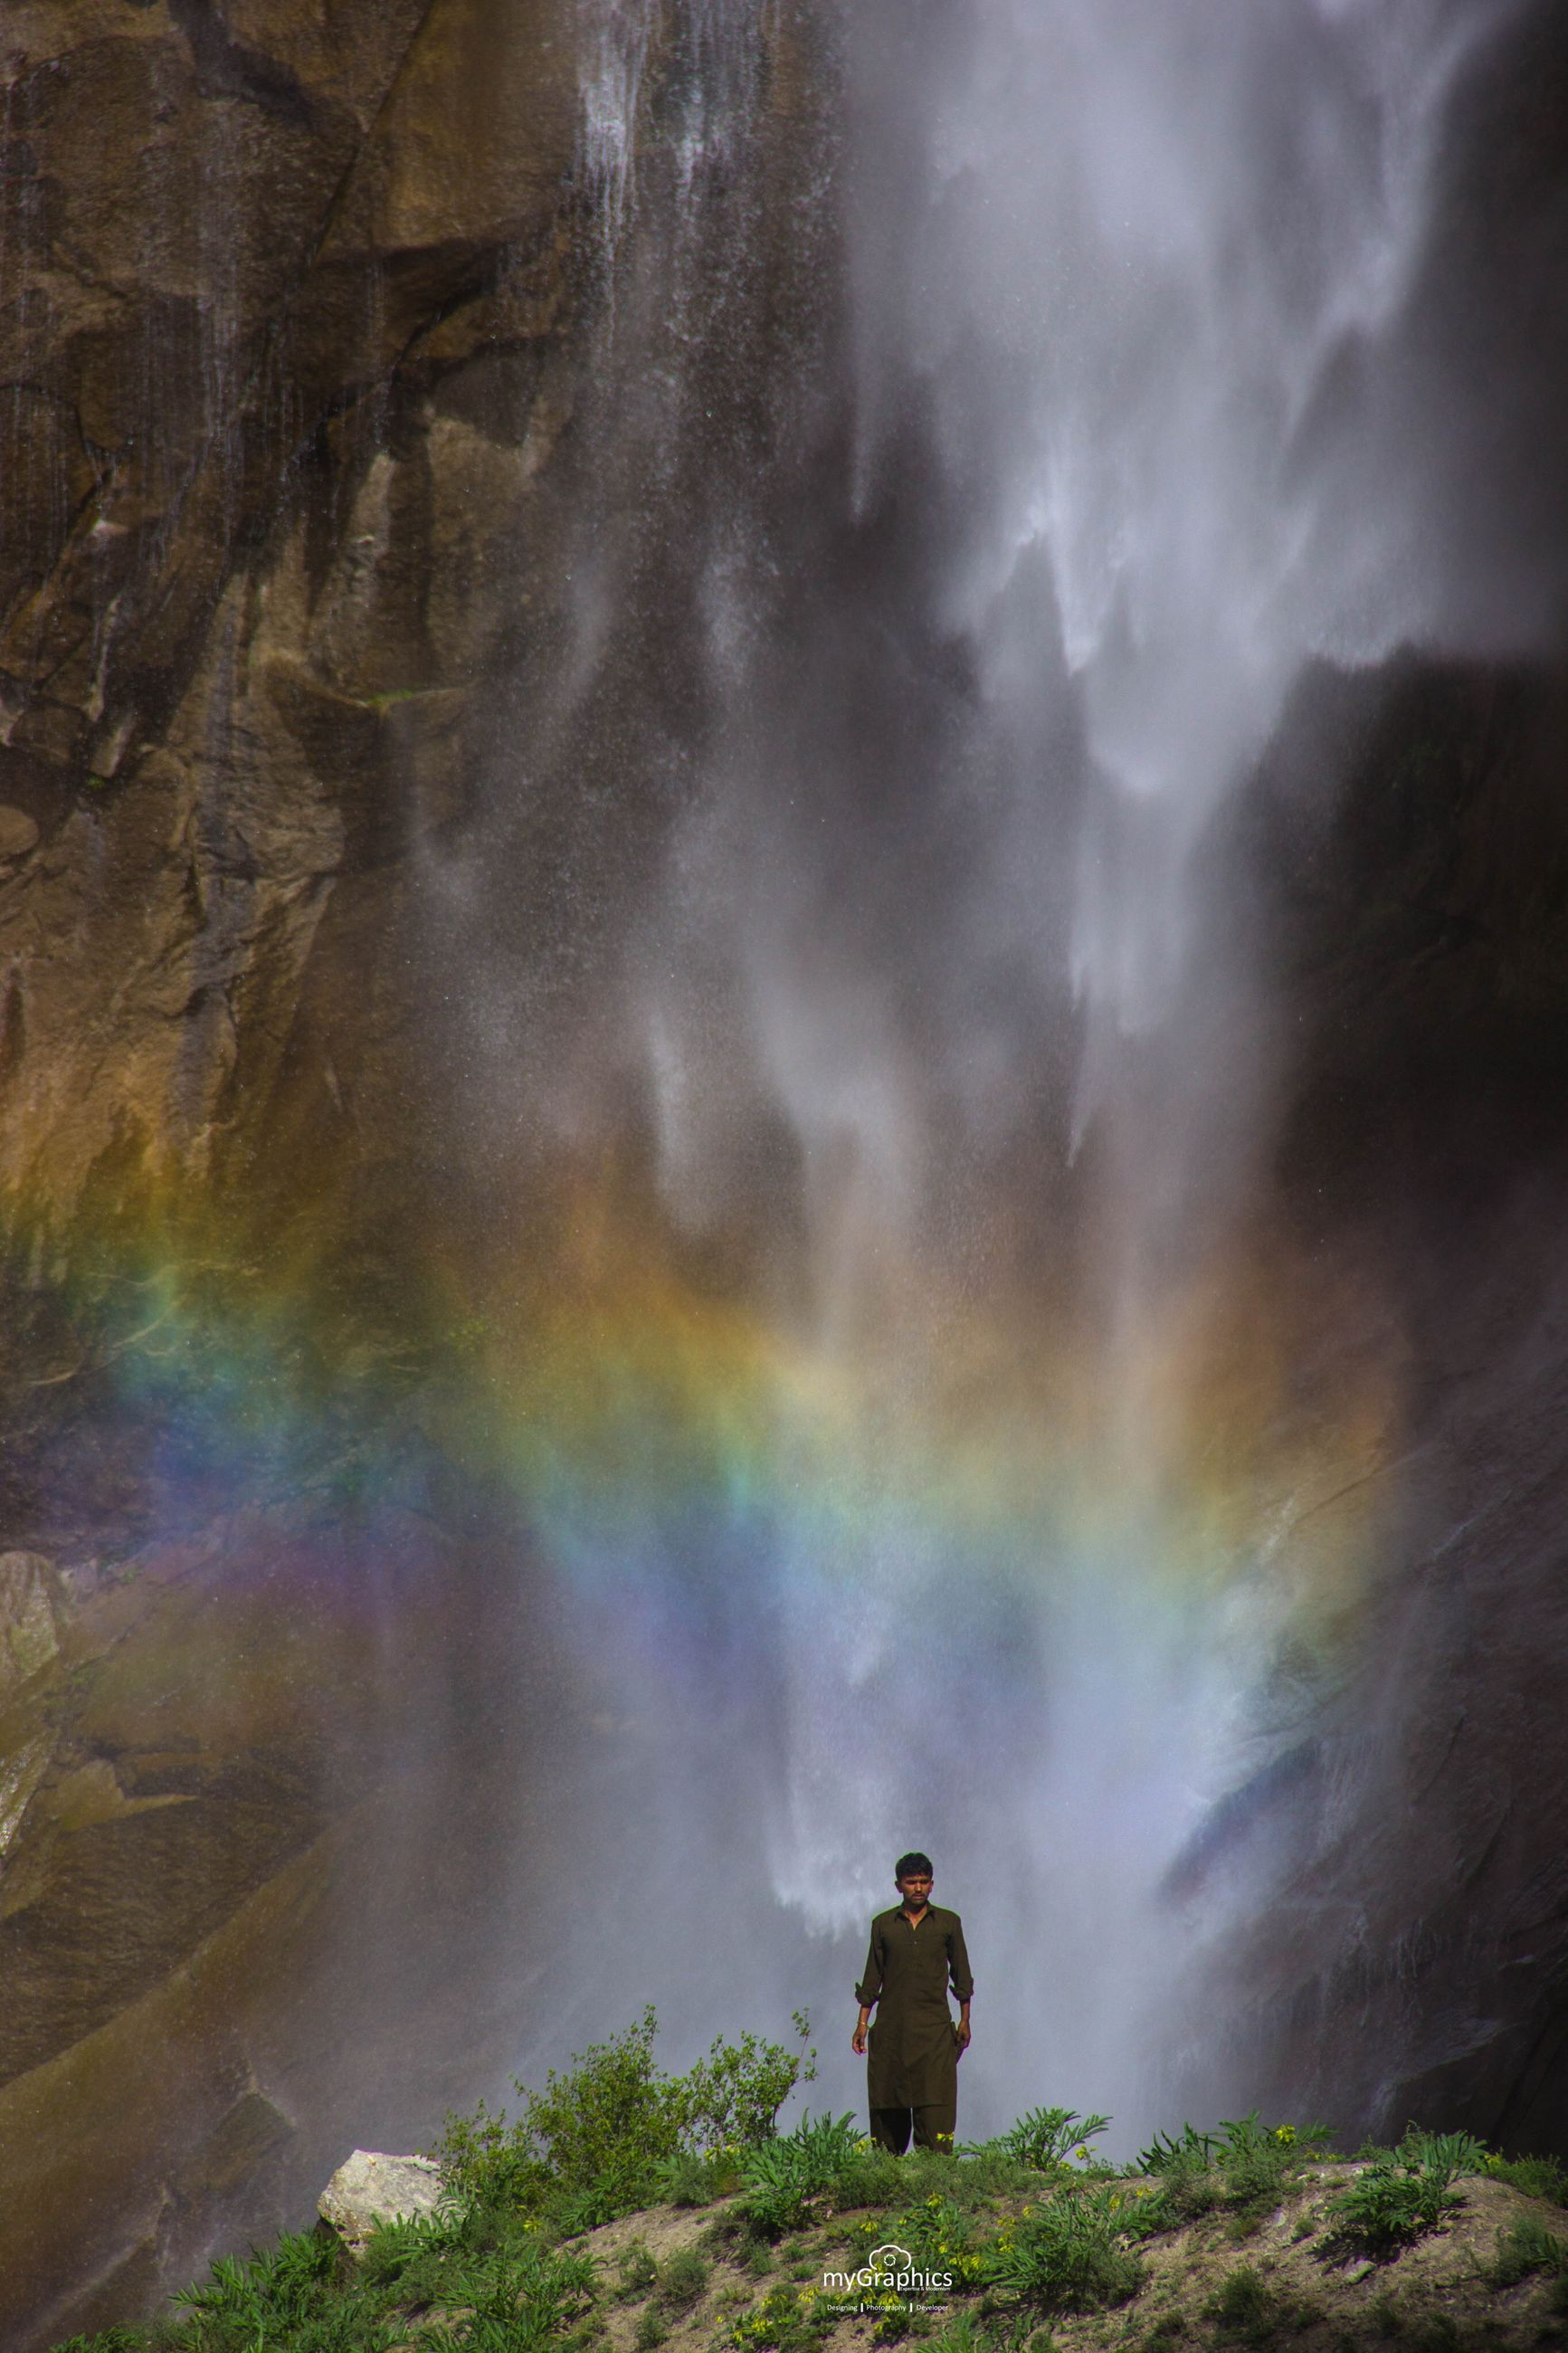 real people, one person, rainbow, silhouette, outdoors, men, rear view, nature, beauty in nature, long exposure, lifestyles, motion, waterfall, leisure activity, scenics, water, day, standing, sky, people